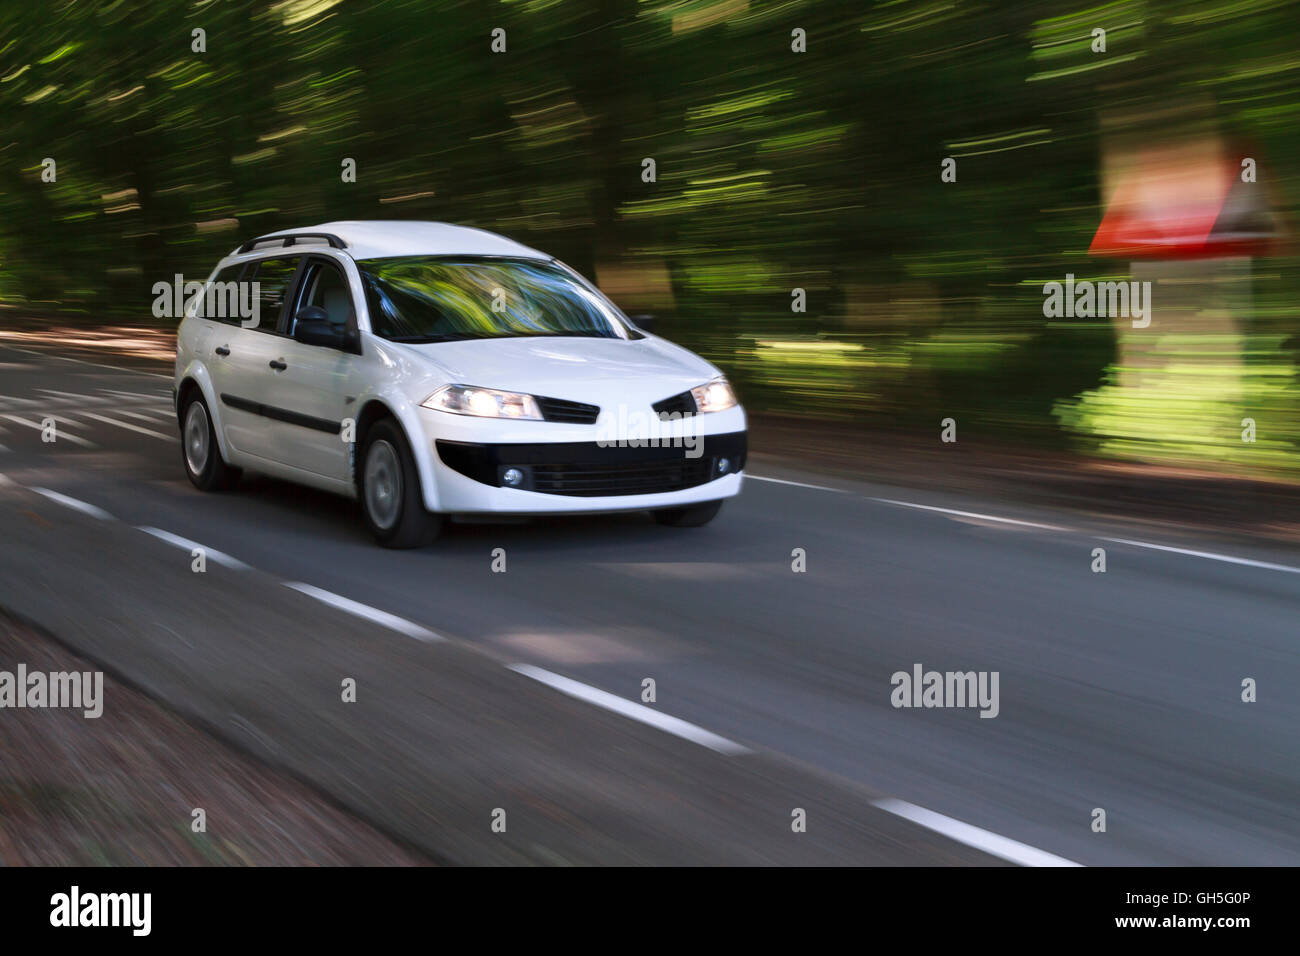 Speeding white car with motion look on a road coming out of the forest in the sunlight - Stock Image